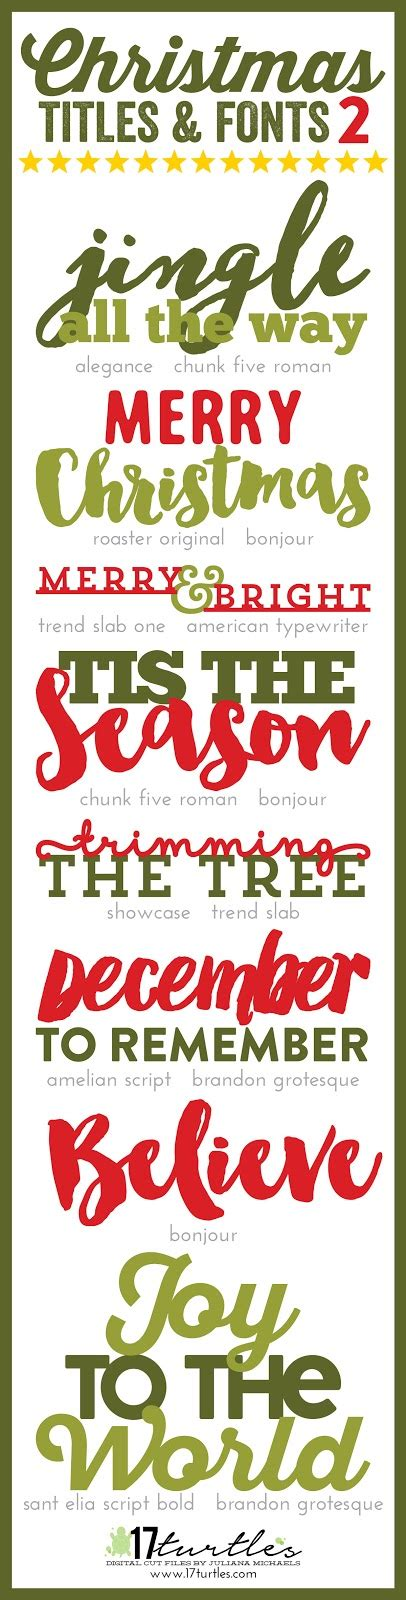 christmas titles and fonts 2 by juliana michaels 17turtles